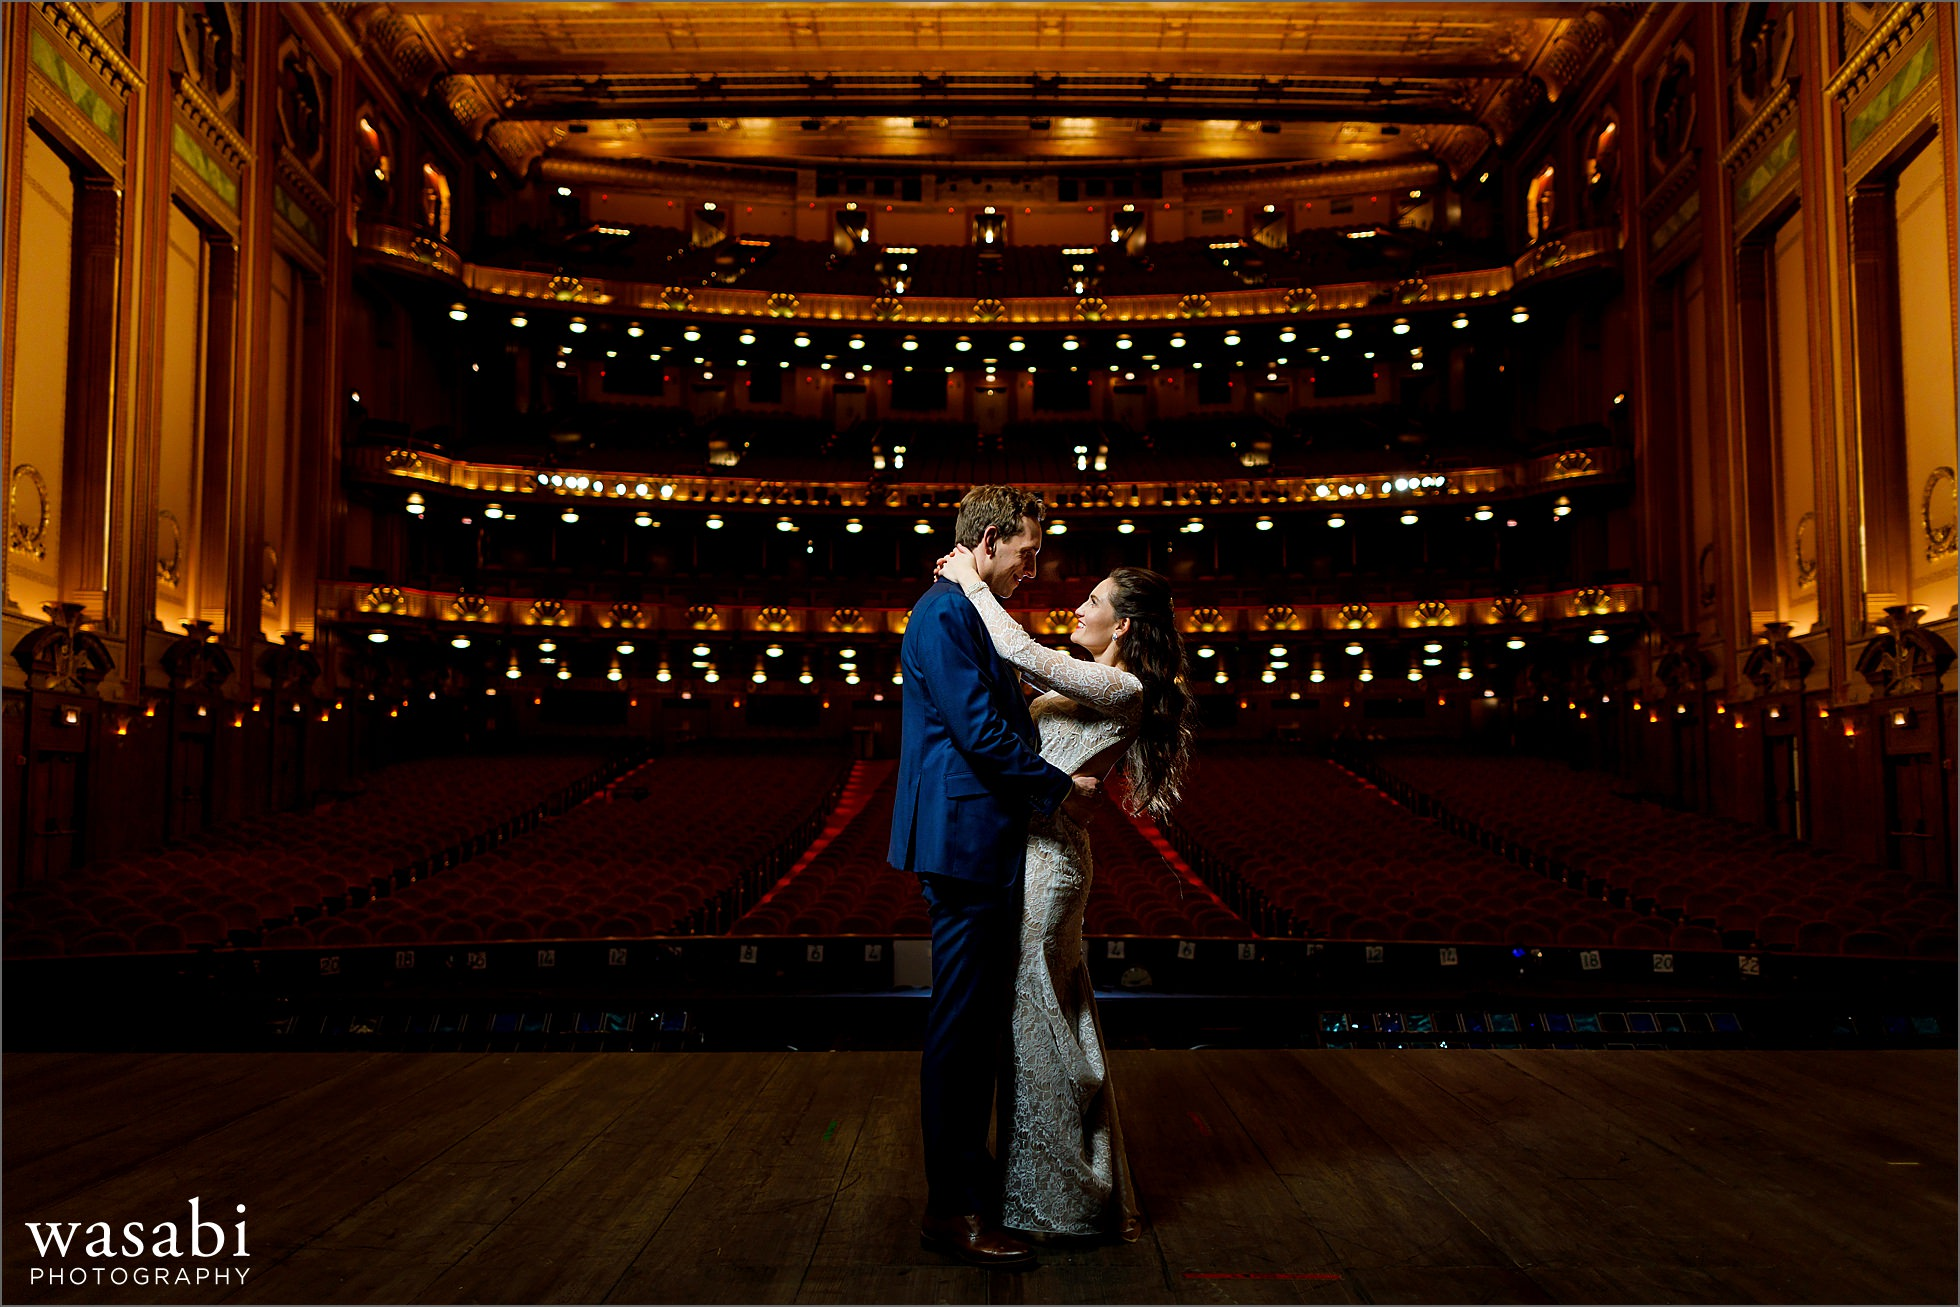 wide angle photos showing entire theatre while bride and groom pose for portrait on stage at Lyric Opera House Chicago wedding